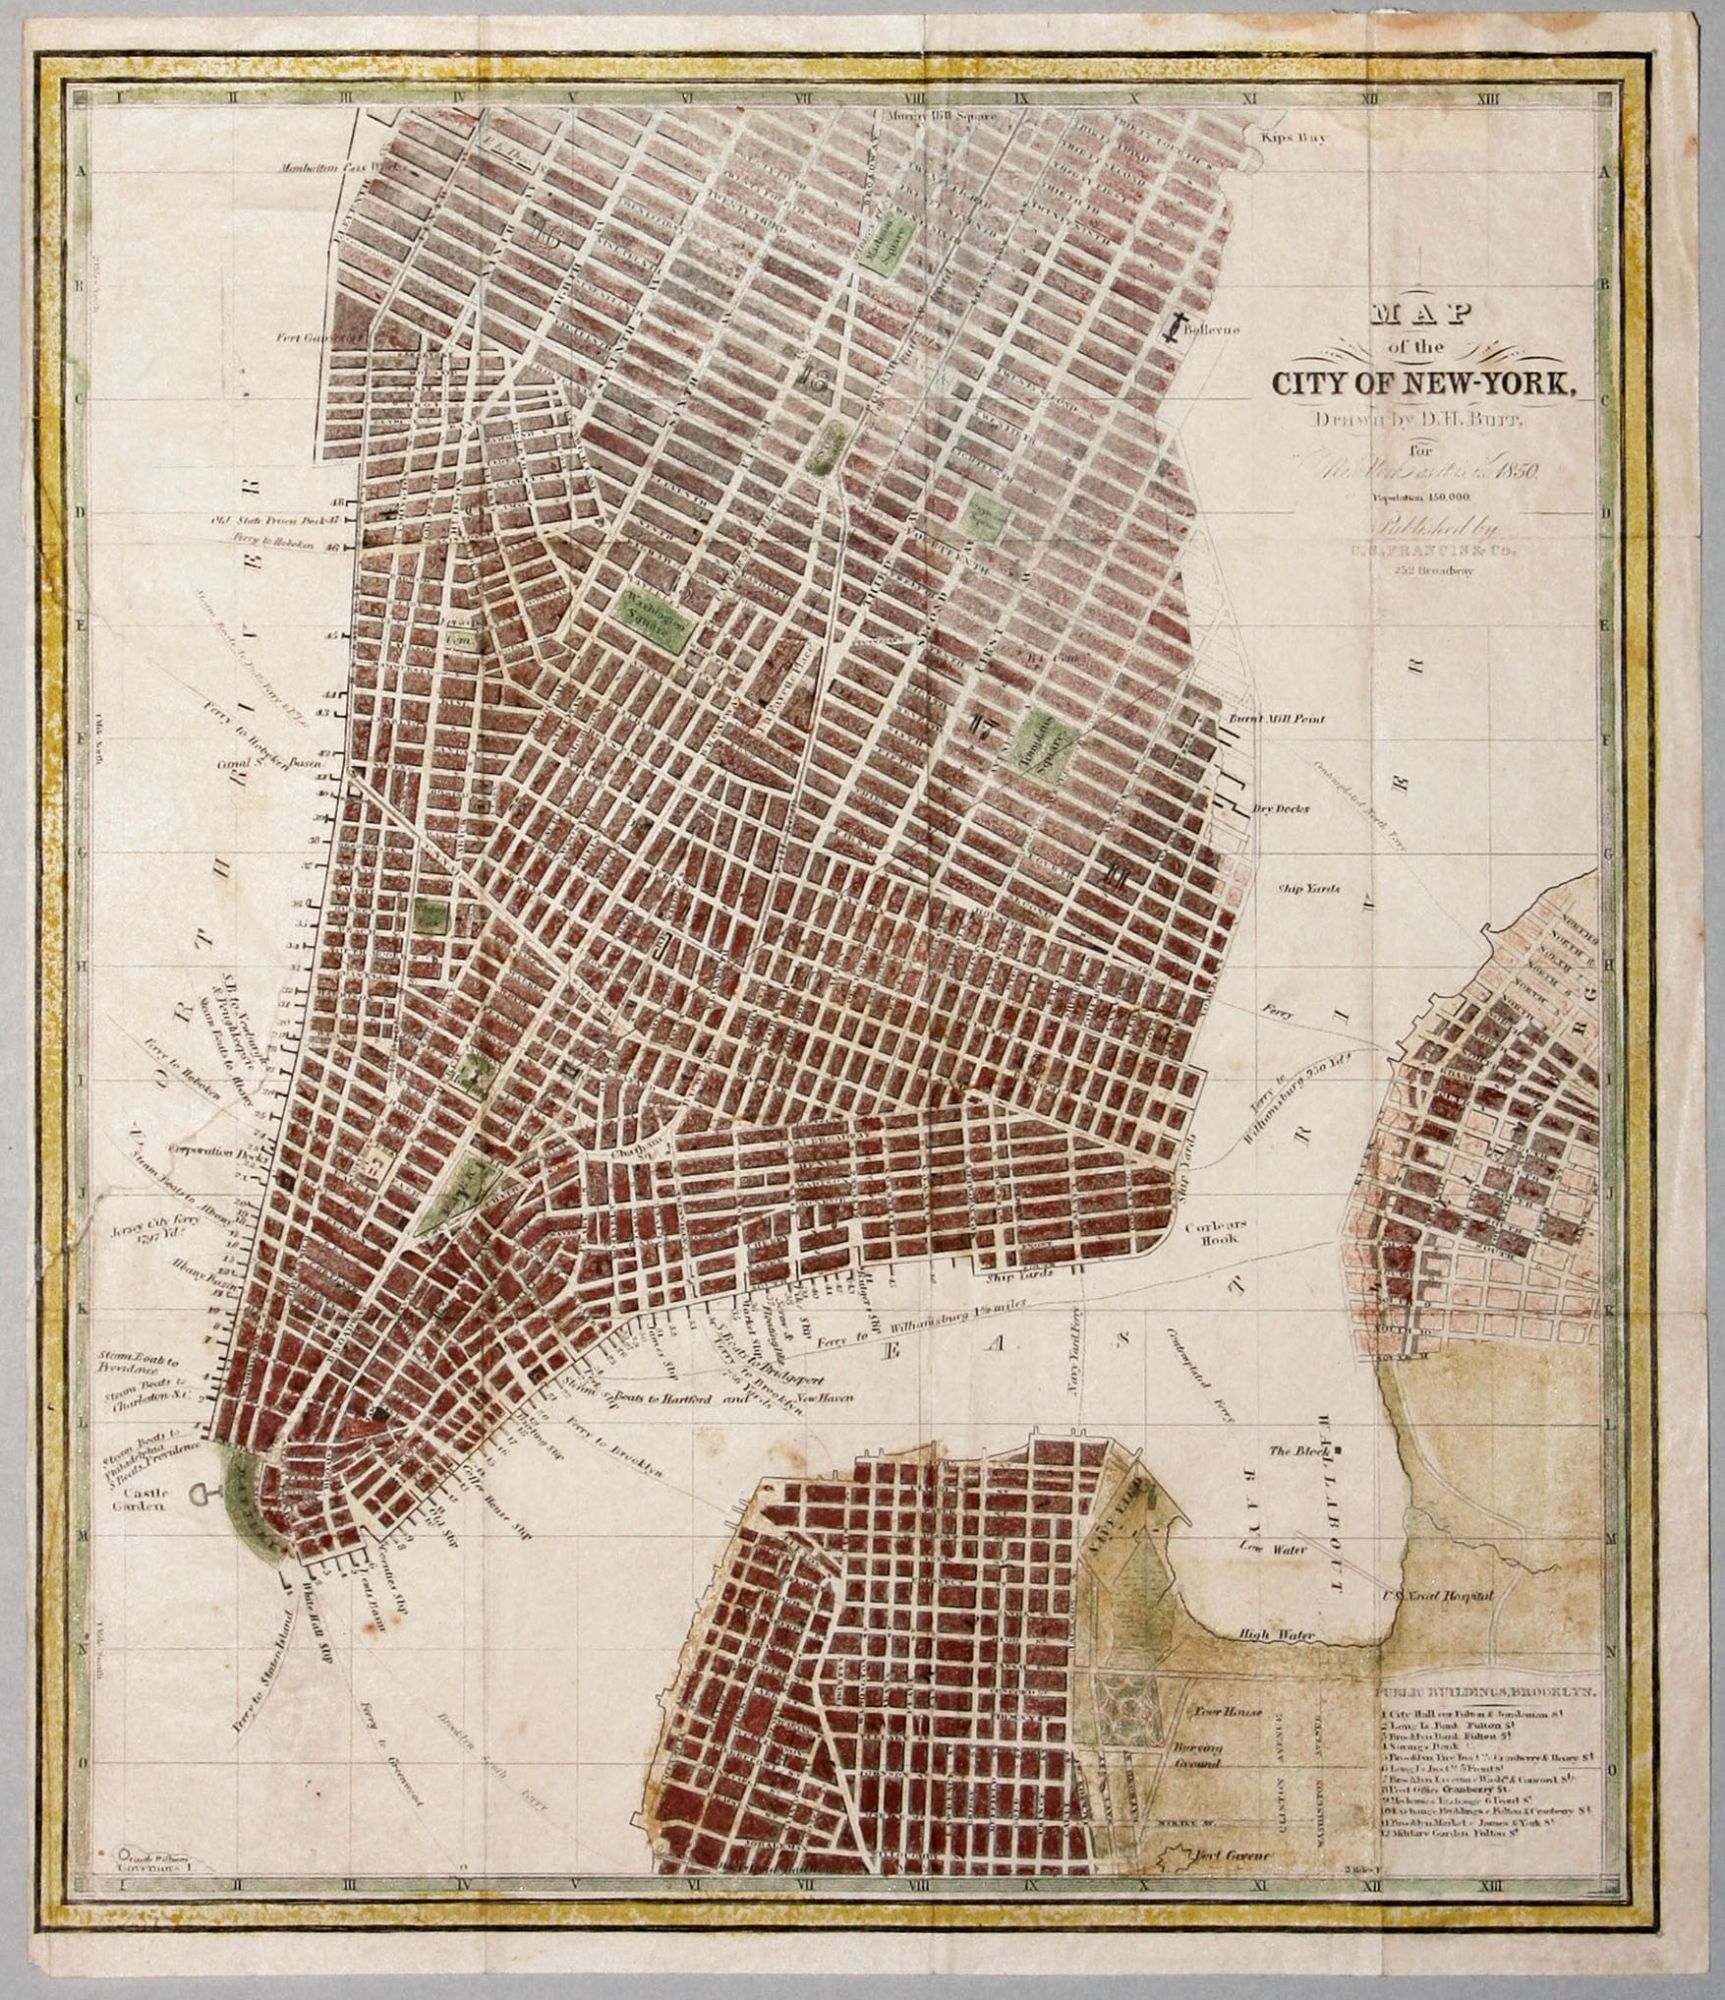 Map Of New York 1850.Map Of The City Of New York Drawn By D H Burr For New York As It